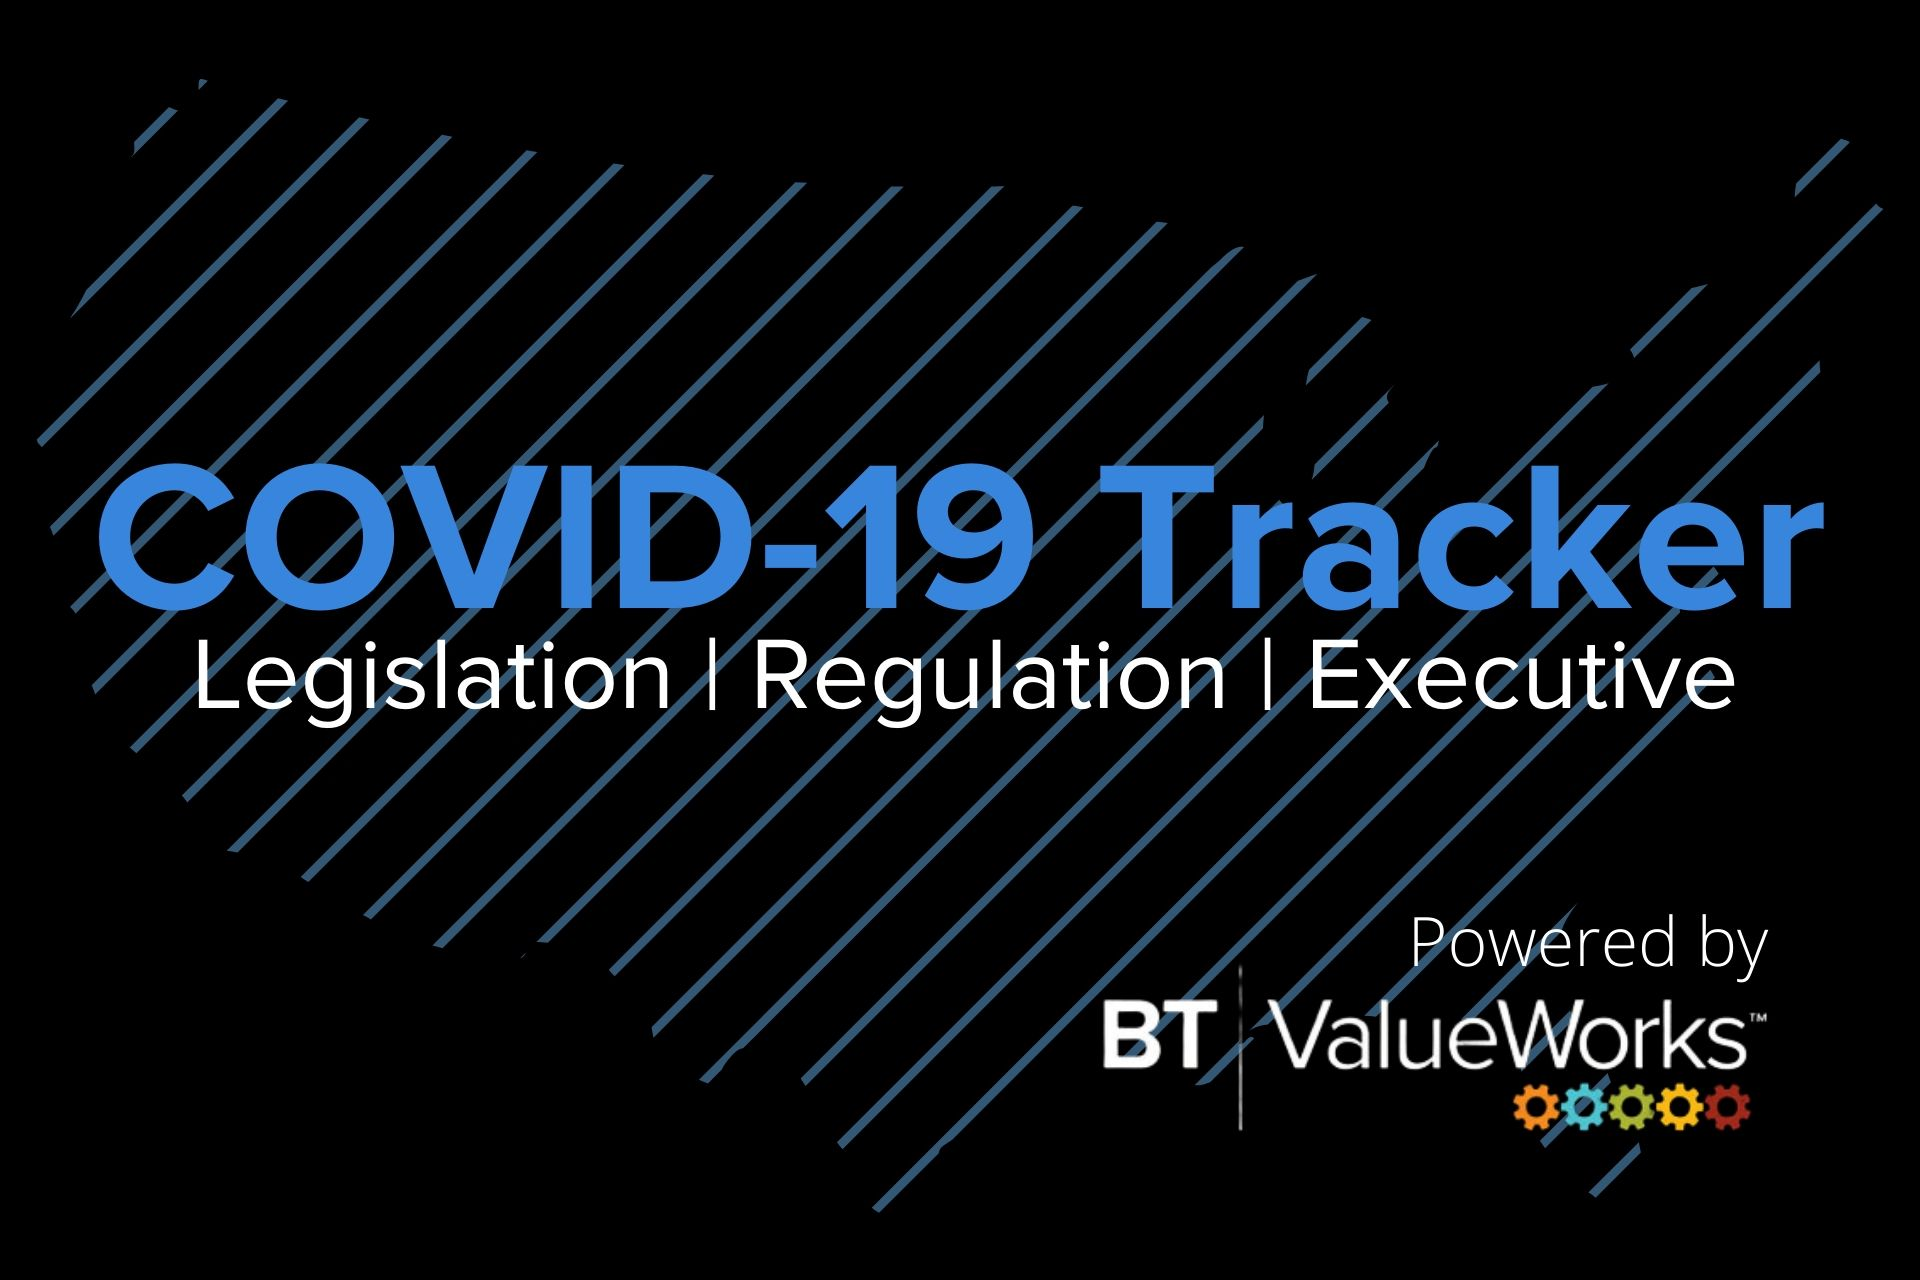 COVID-19 Tracker: Legislation, Regulation, Executive